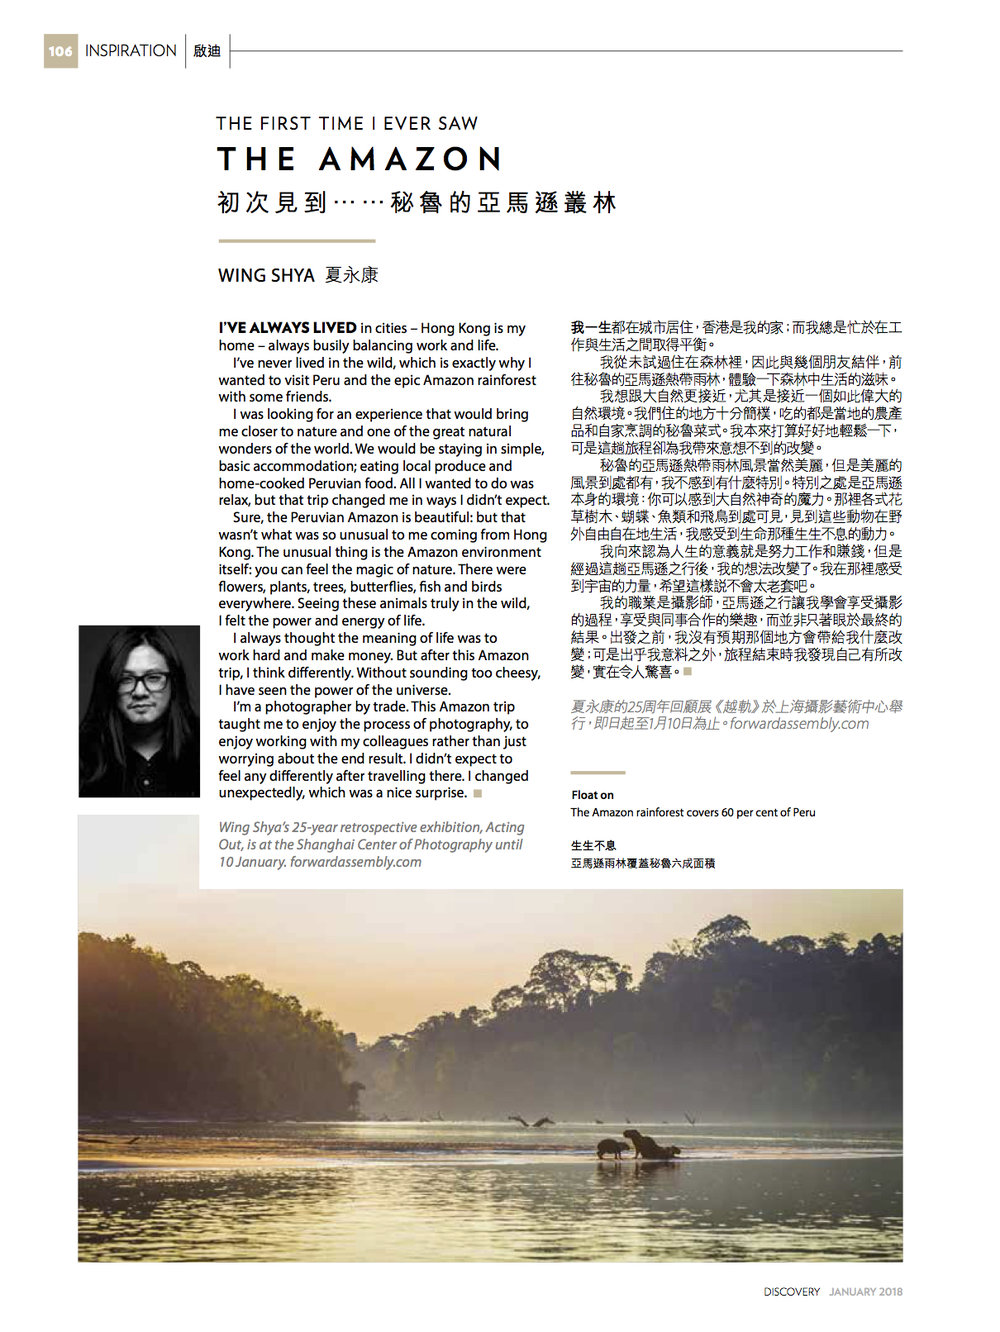 DiscoveryCathayPacific_WingShya_January2018 issue[1].jpg